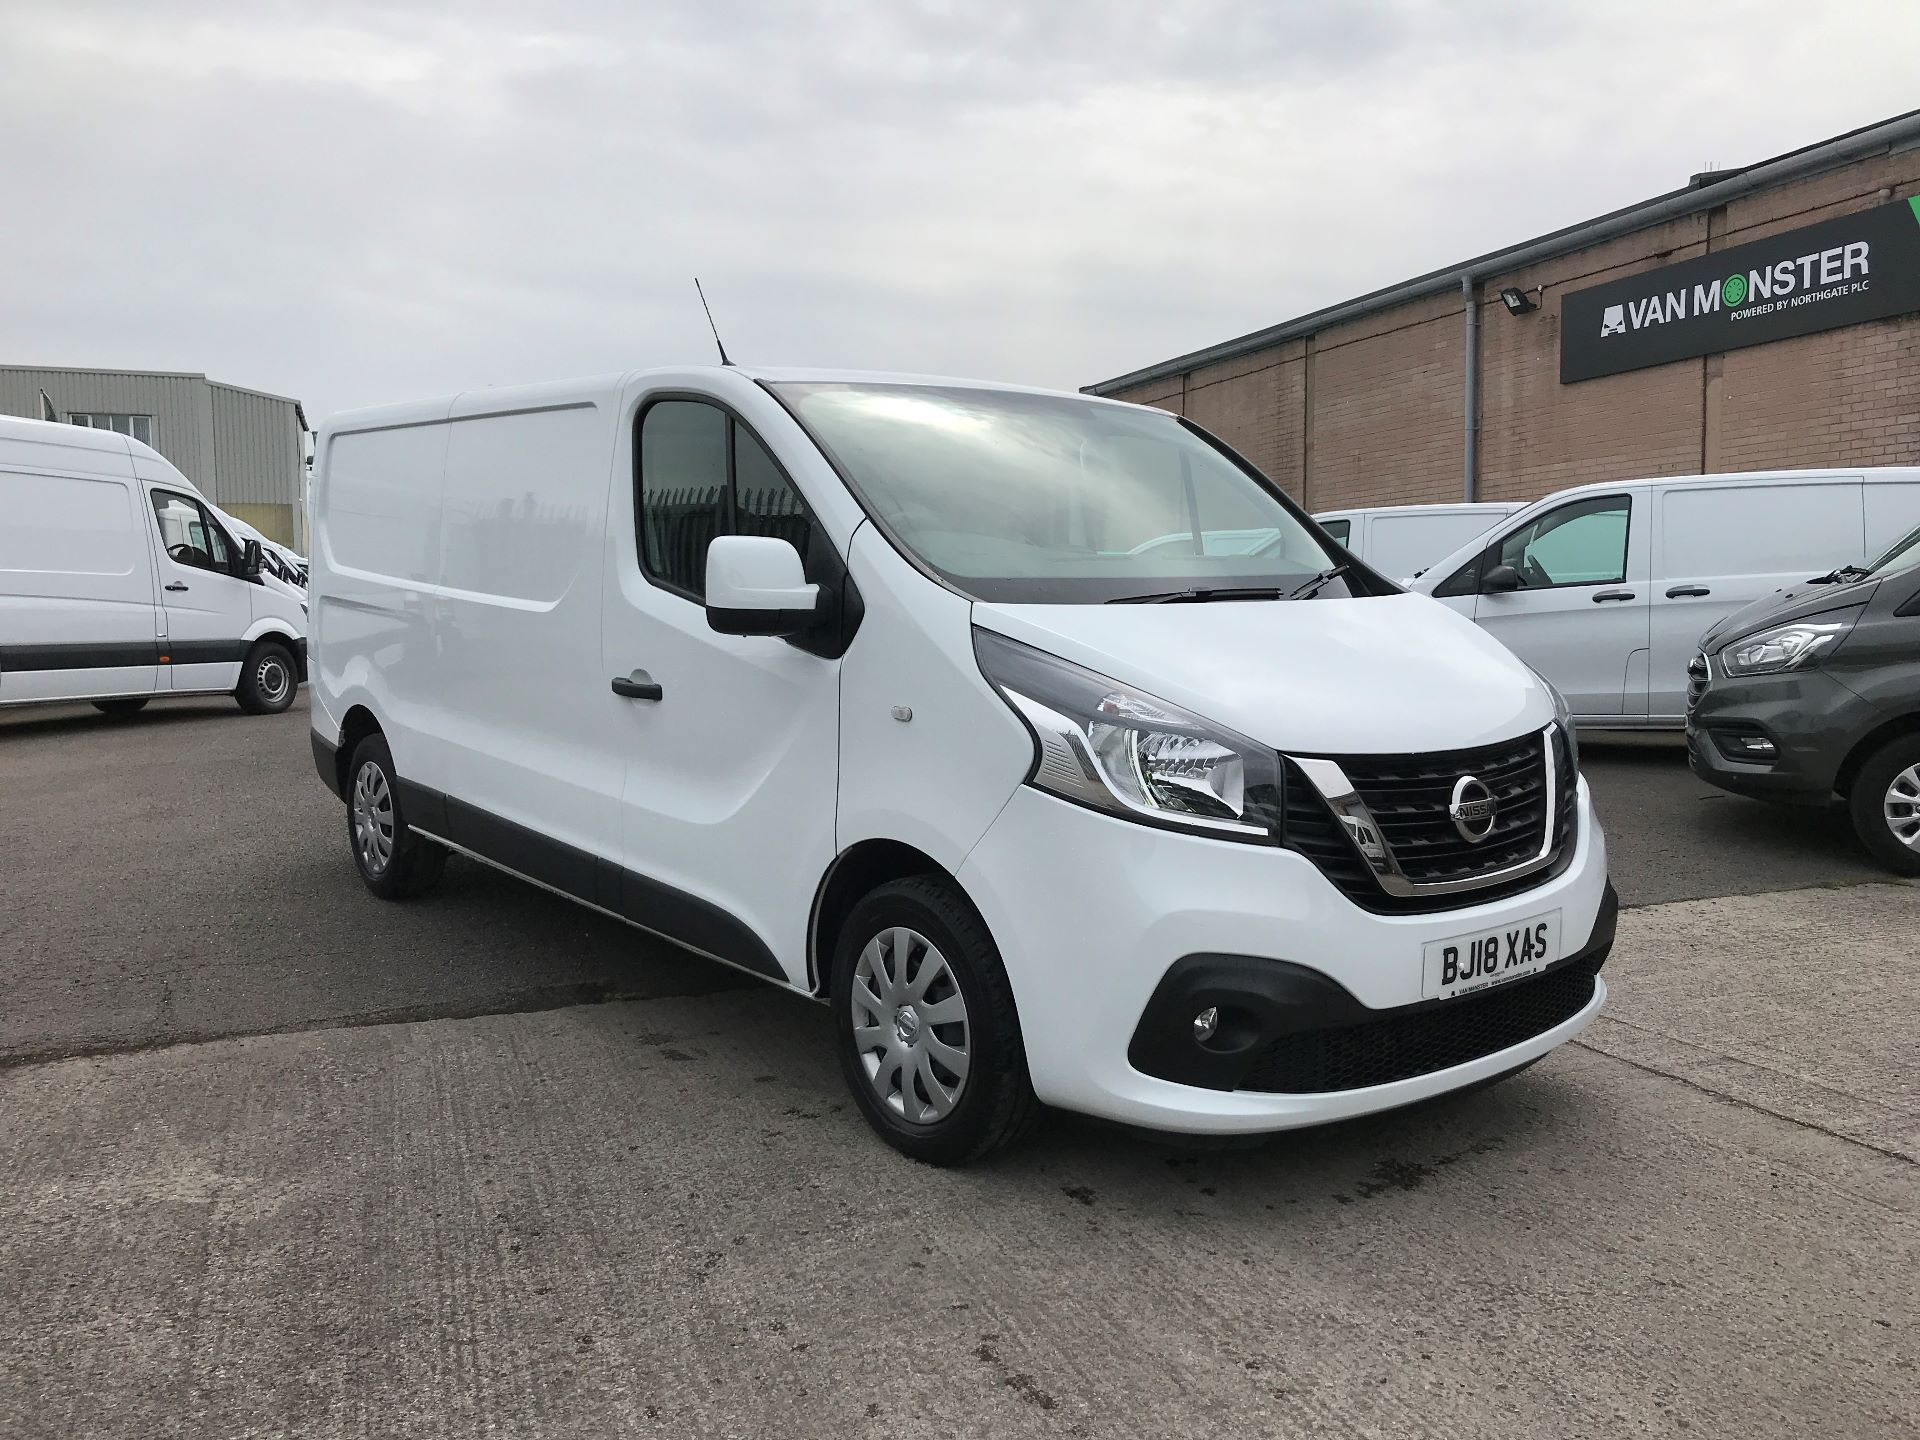 2018 Nissan Nv300 ACENTA L2 H1 1.6DCI 125PS, AIR CON (BJ18XAS)